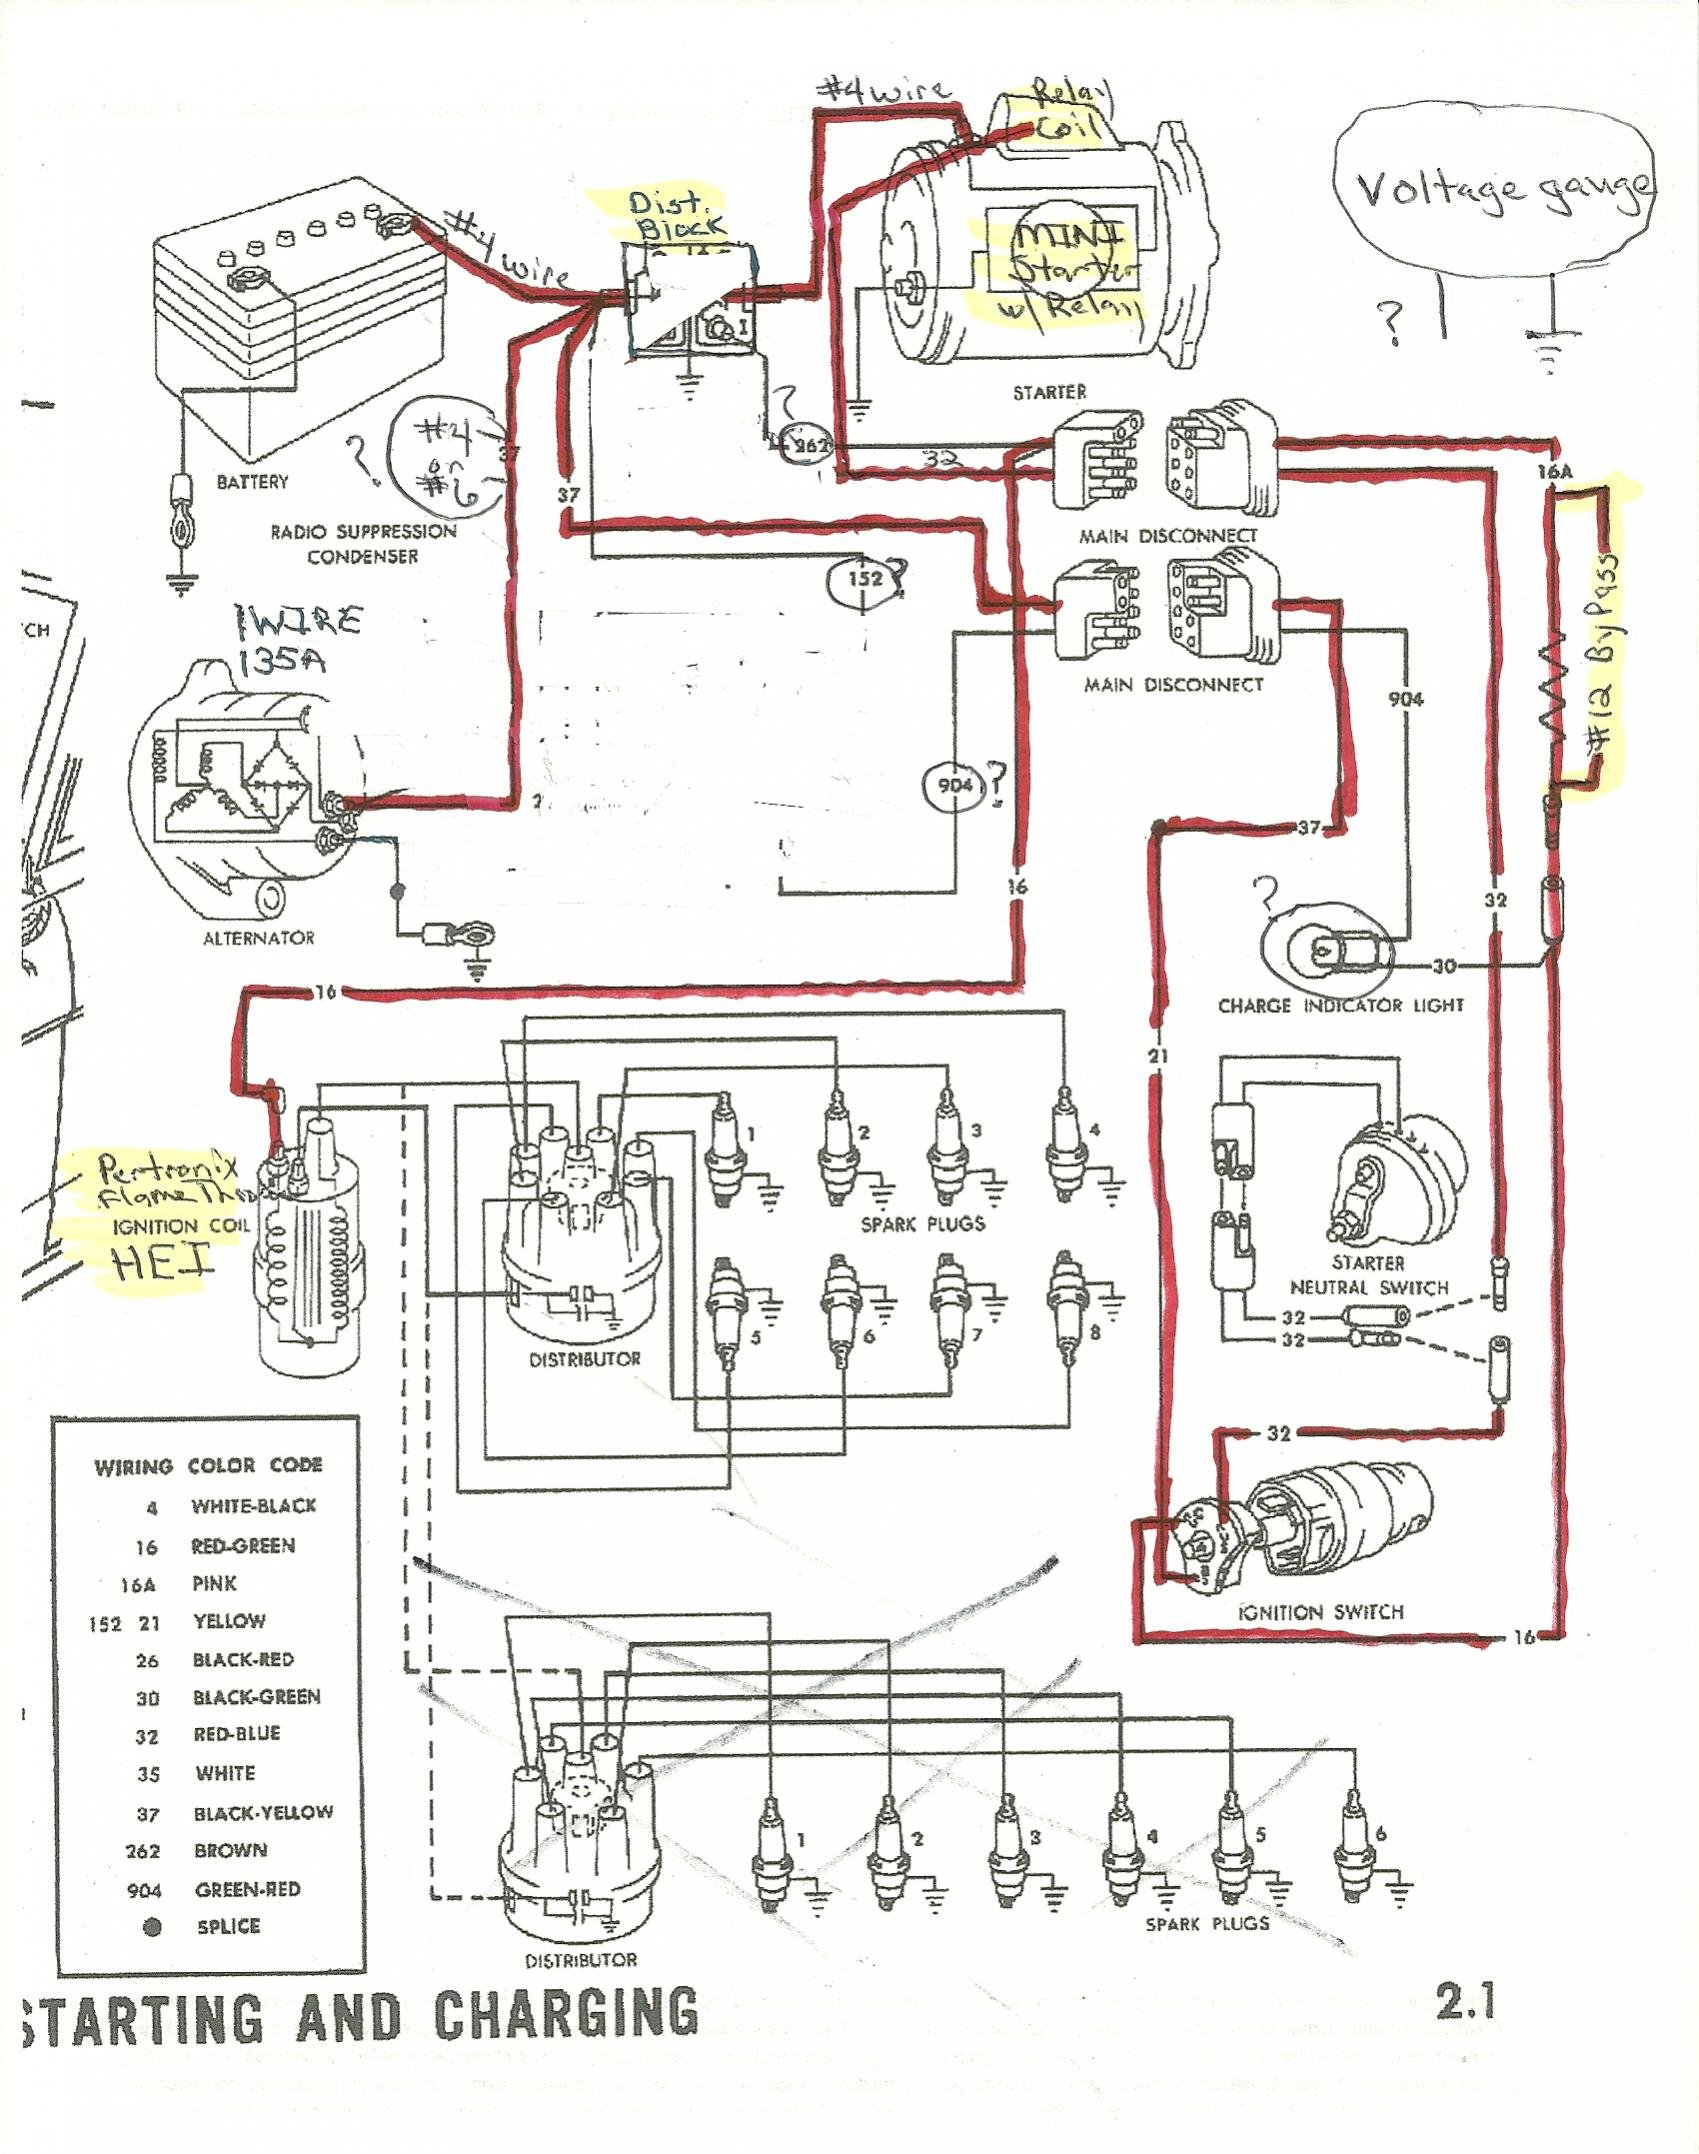 163469d1347246202 1965 alternator starter distributor wiring scan0001 1970 ford mustang mercury cougar original wiring diagram Ford Alternator Wiring Diagram at cos-gaming.co